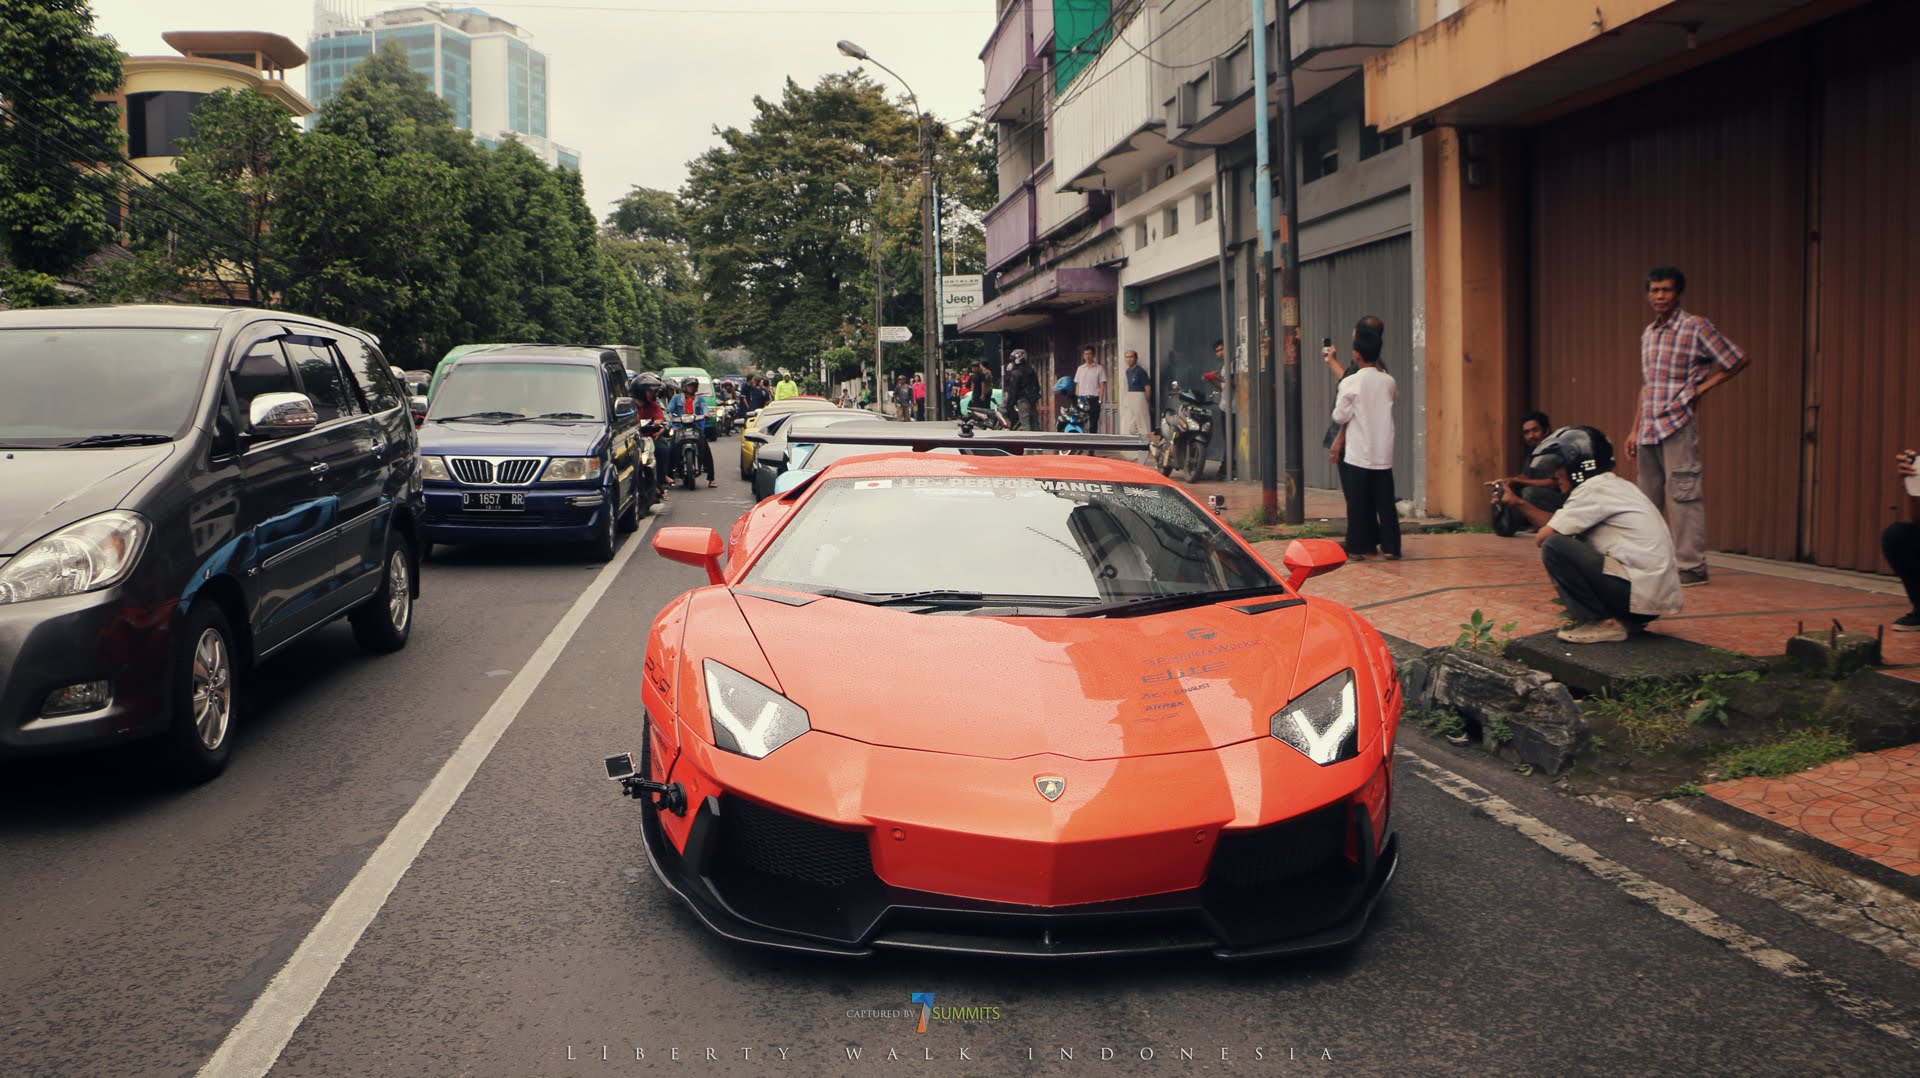 LIBERTY WALK INDONESIA Lamborghini Aventador (Bigtoy Garage)